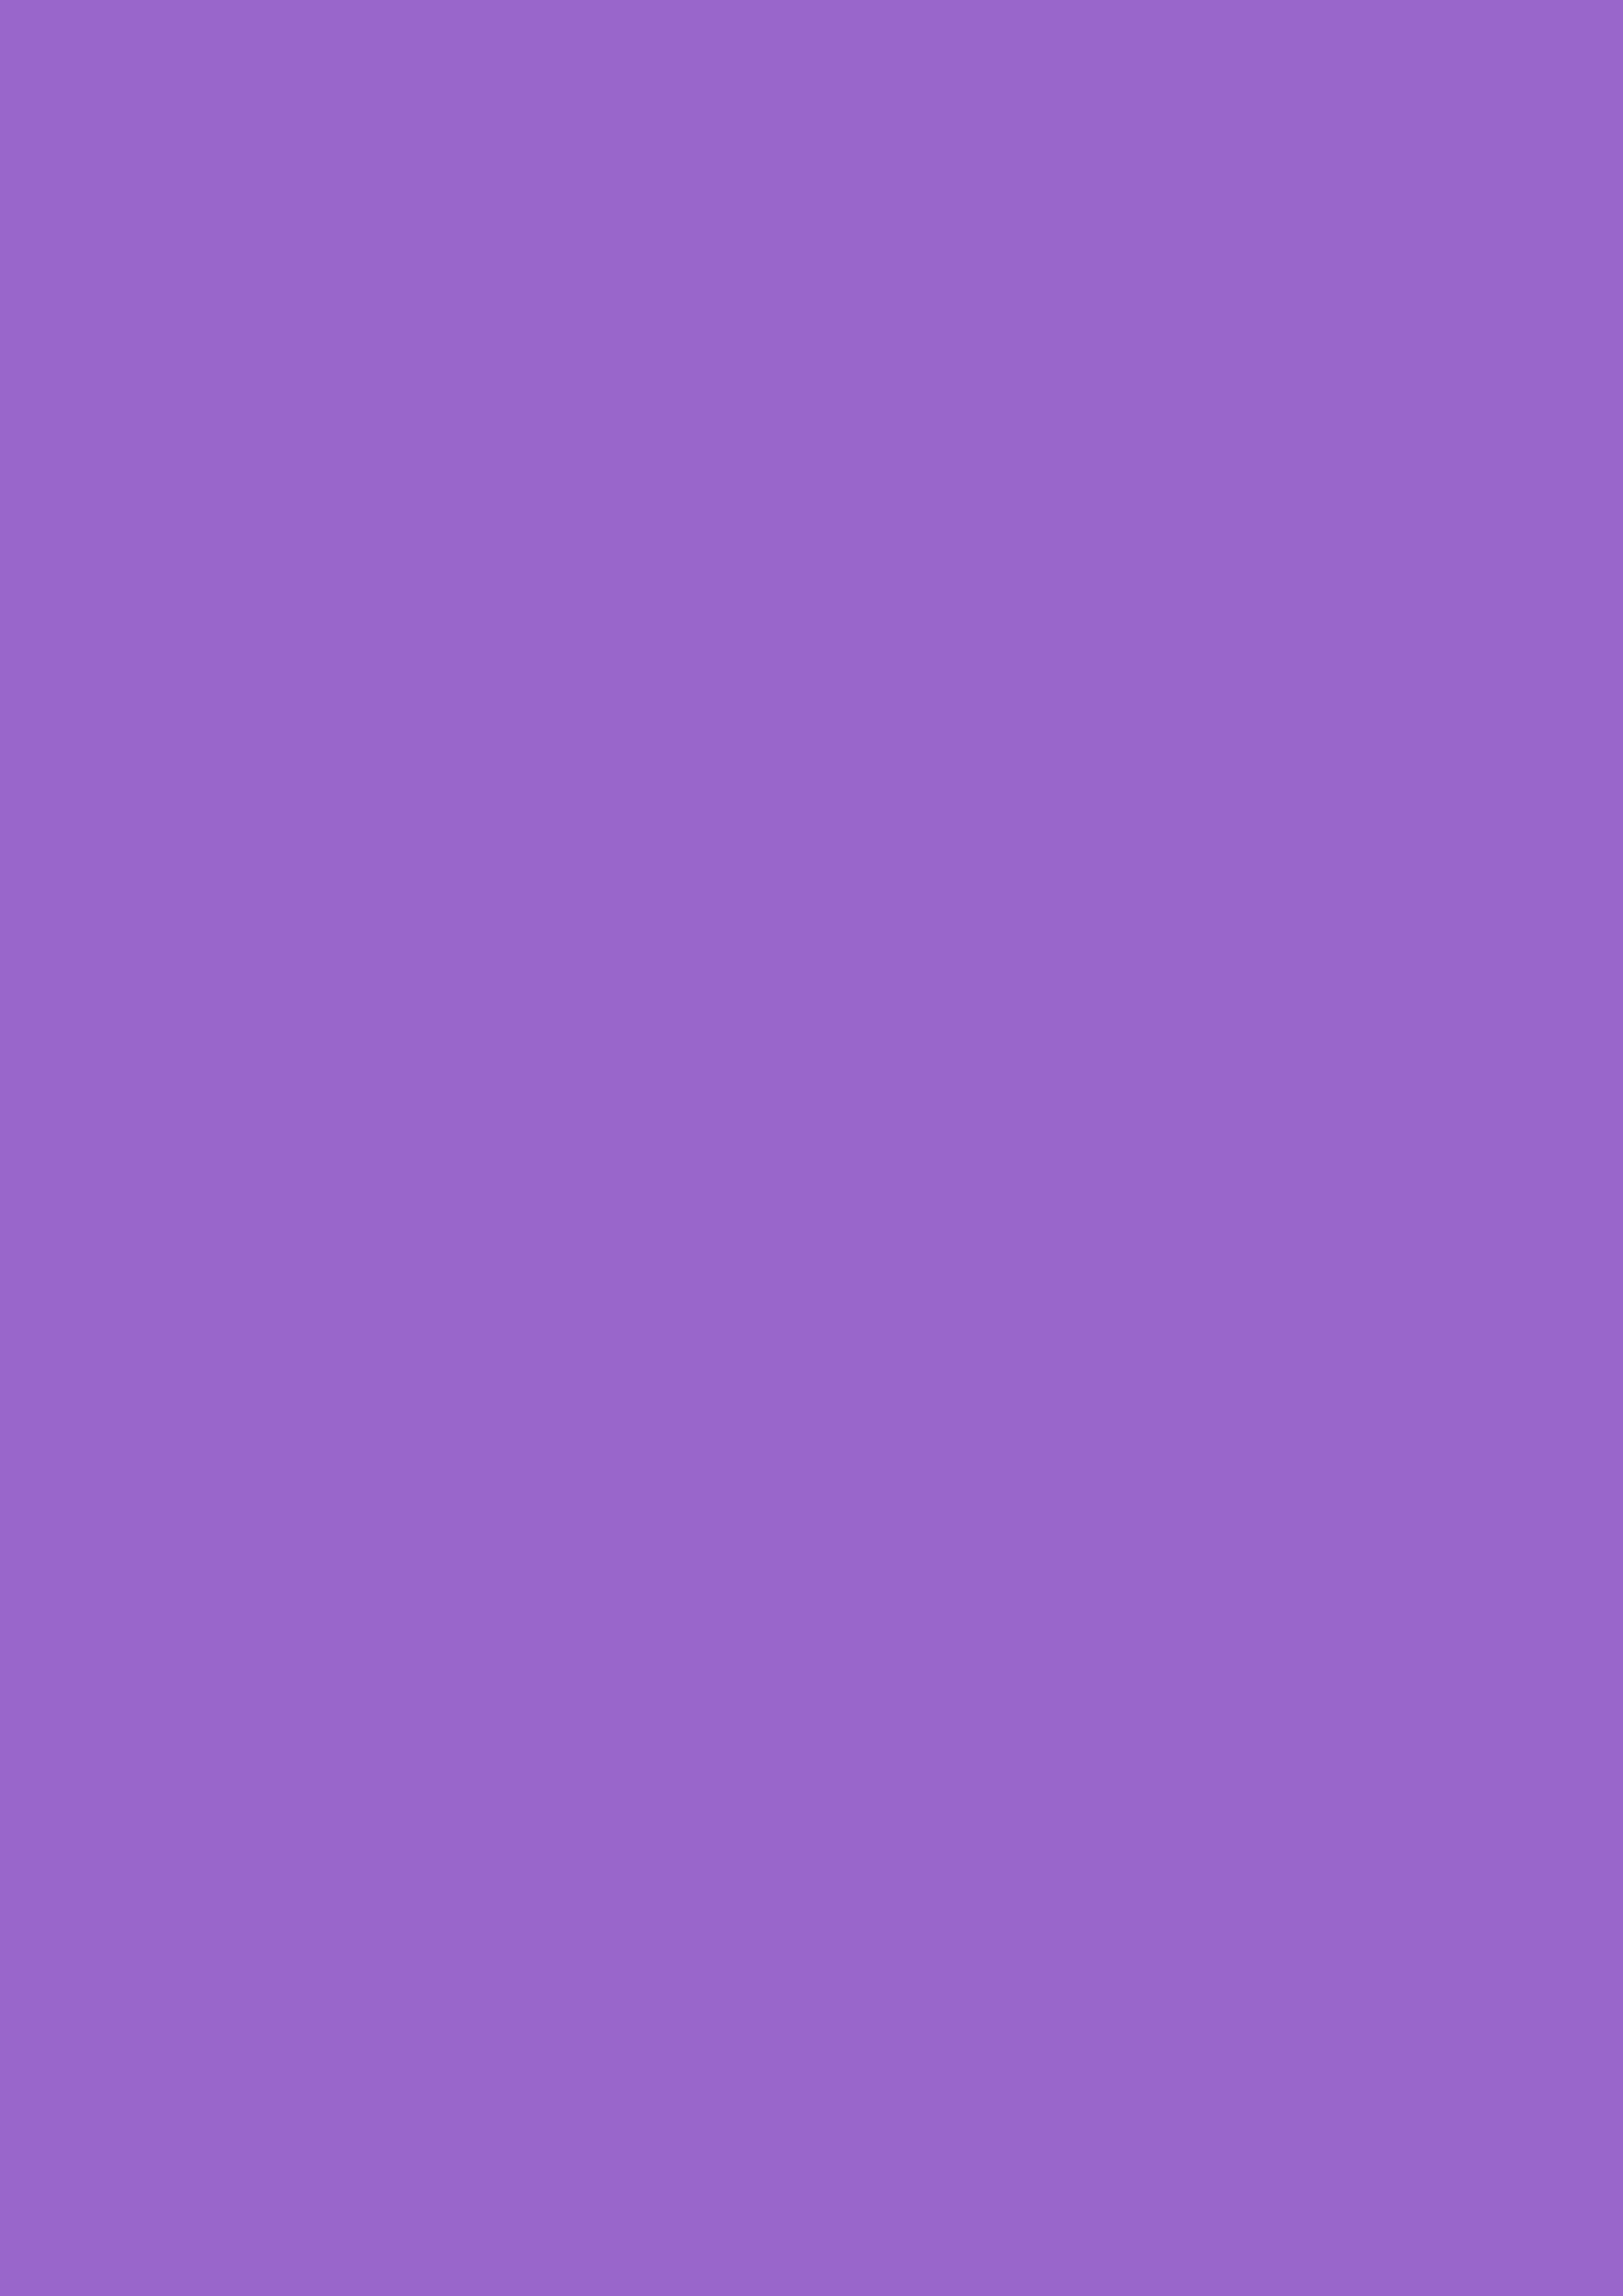 2480x3508 Amethyst Solid Color Background